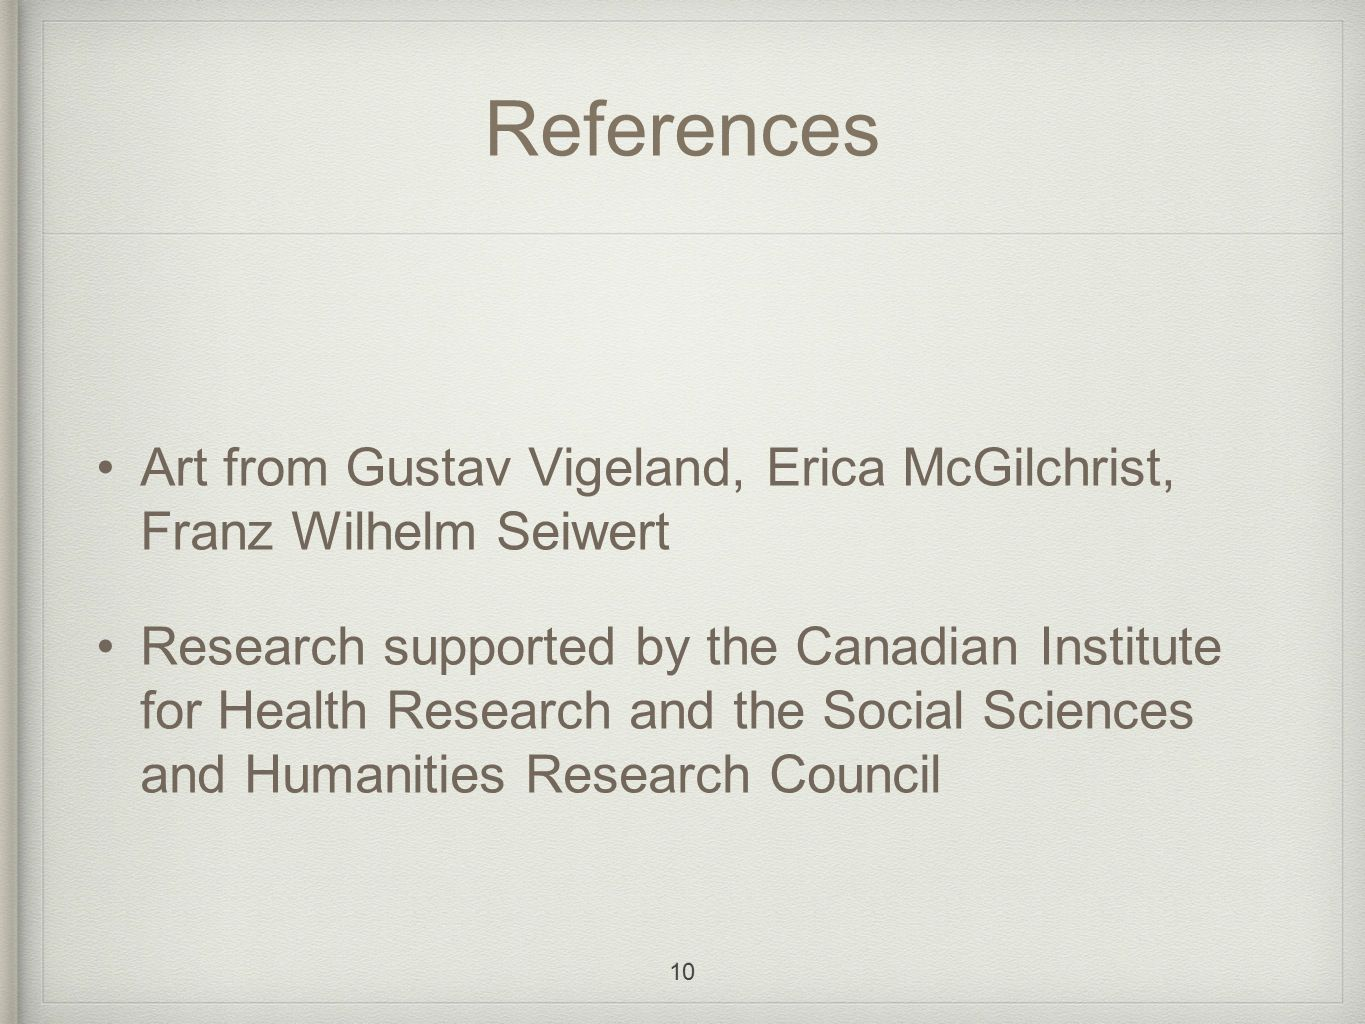 References Art from Gustav Vigeland, Erica McGilchrist, Franz Wilhelm Seiwert Research supported by the Canadian Institute for Health Research and the Social Sciences and Humanities Research Council 10